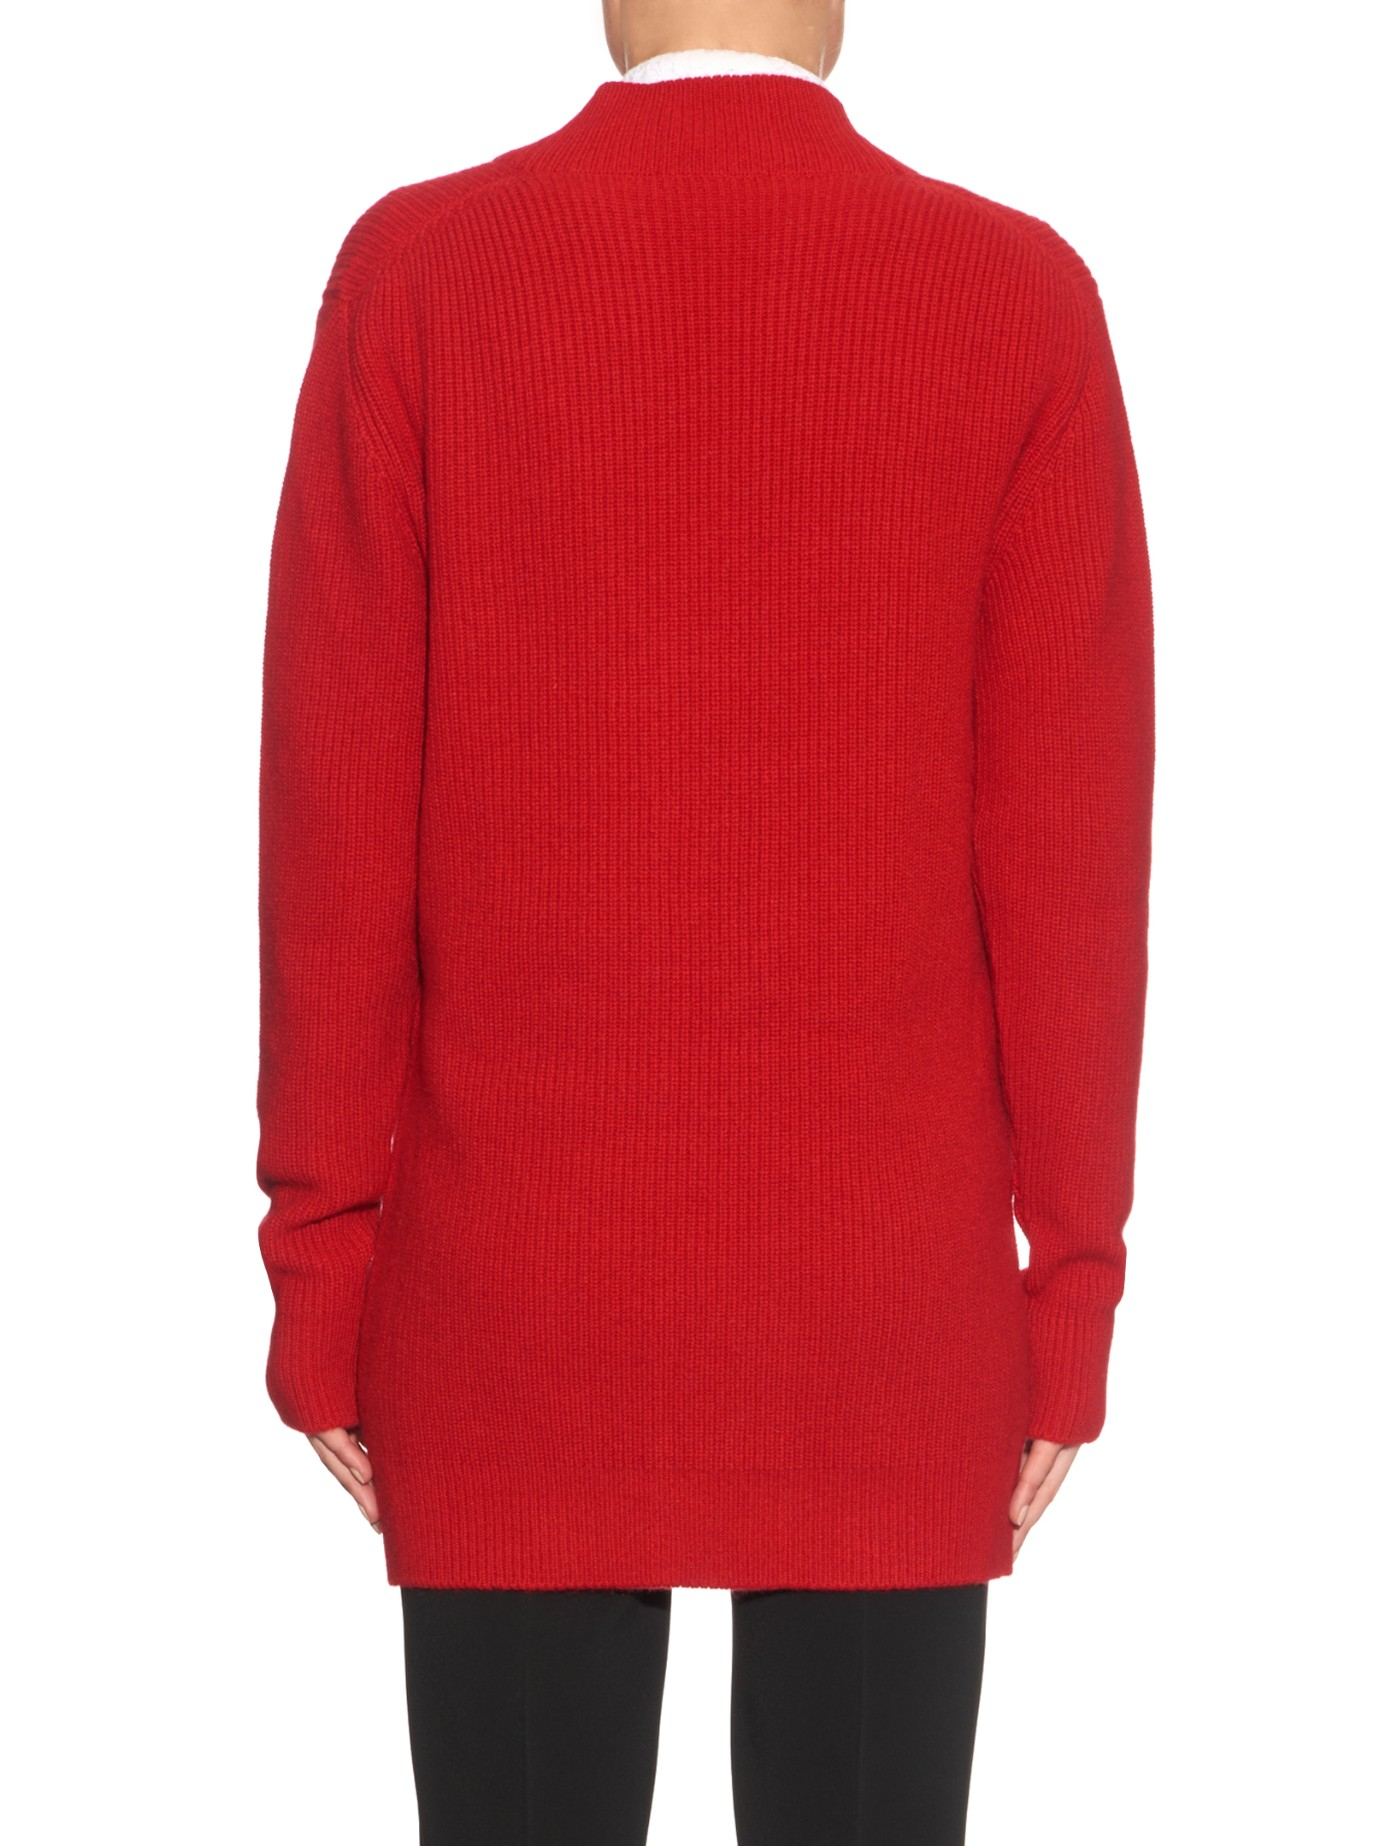 Lyst - Dolce & Gabbana Long-sleeved Cashmere-knit Cardigan ...